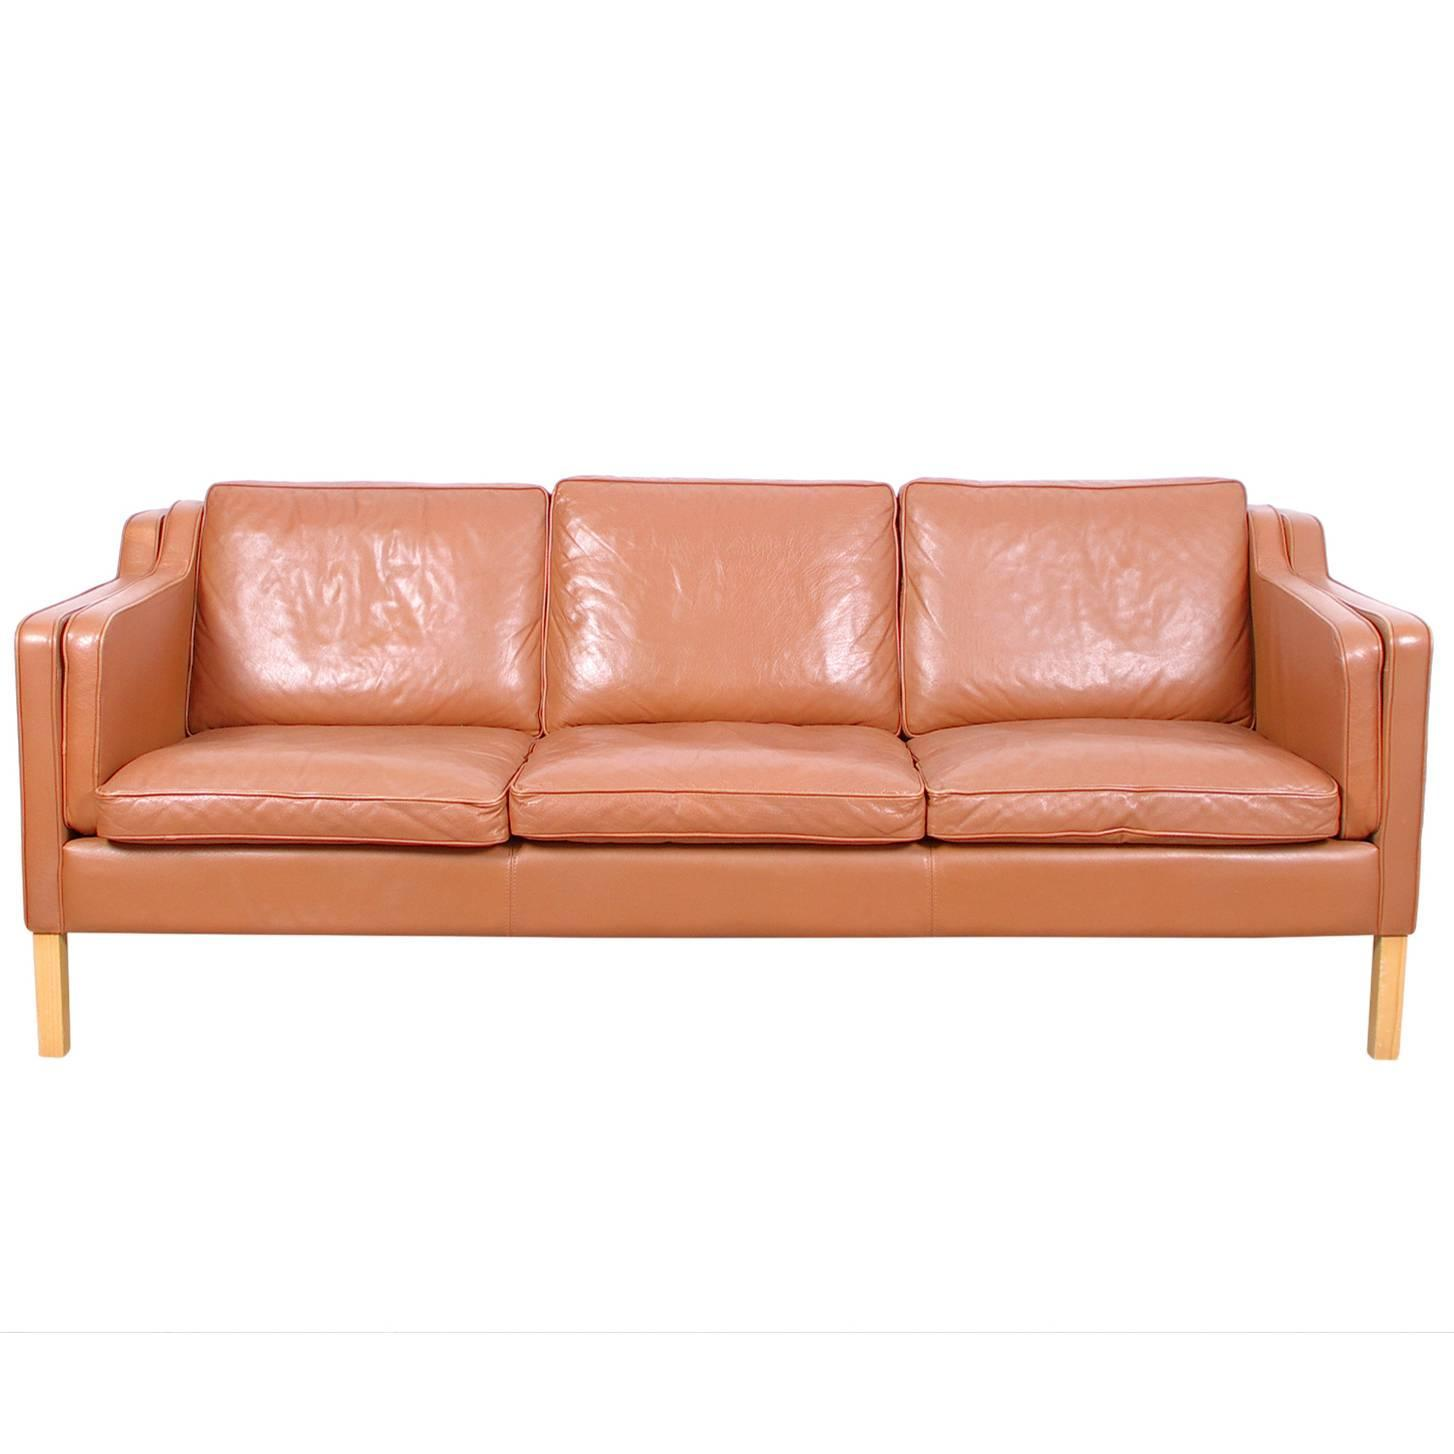 vintage danish leather three seat sofa by stouby at 1stdibs